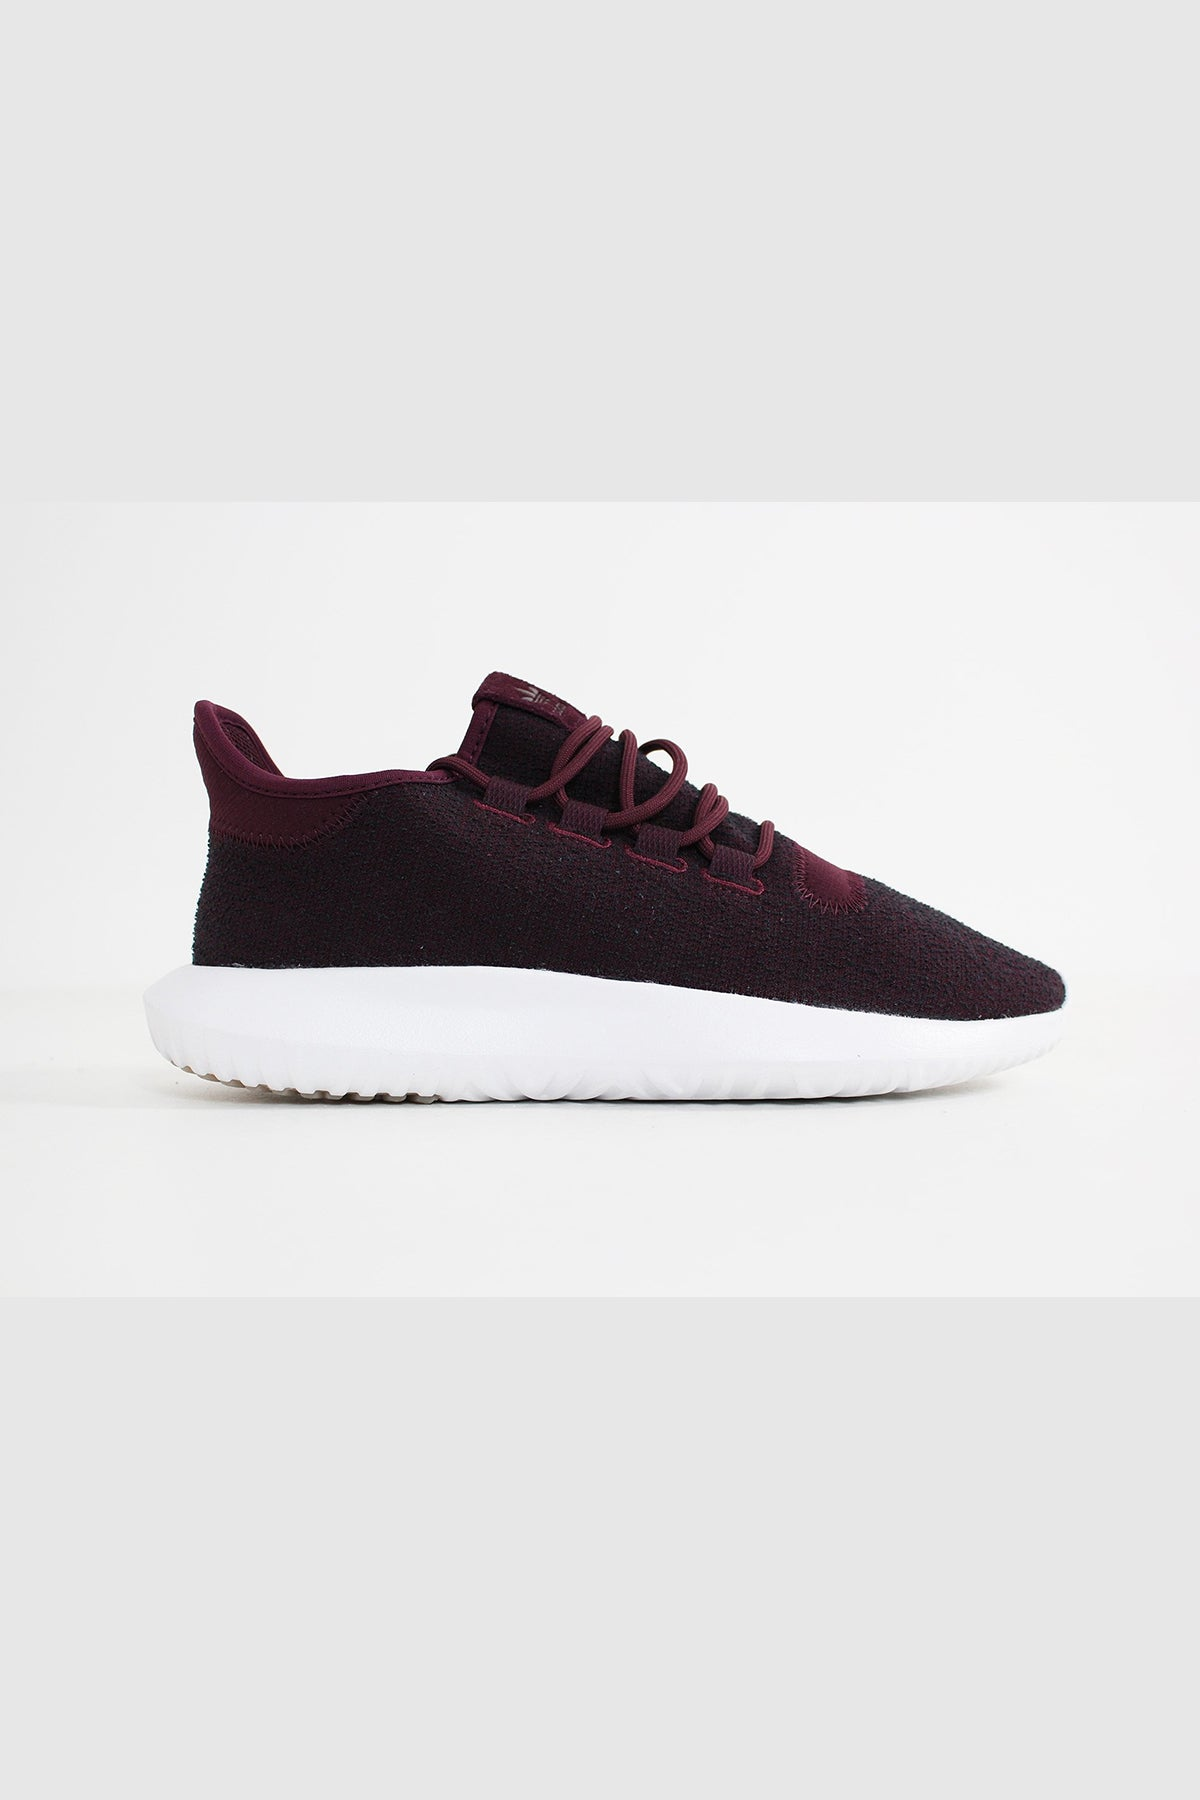 Adidas - Tubular Shadow (Maroon/ Vapour Grey/ FTW White) CQ0927